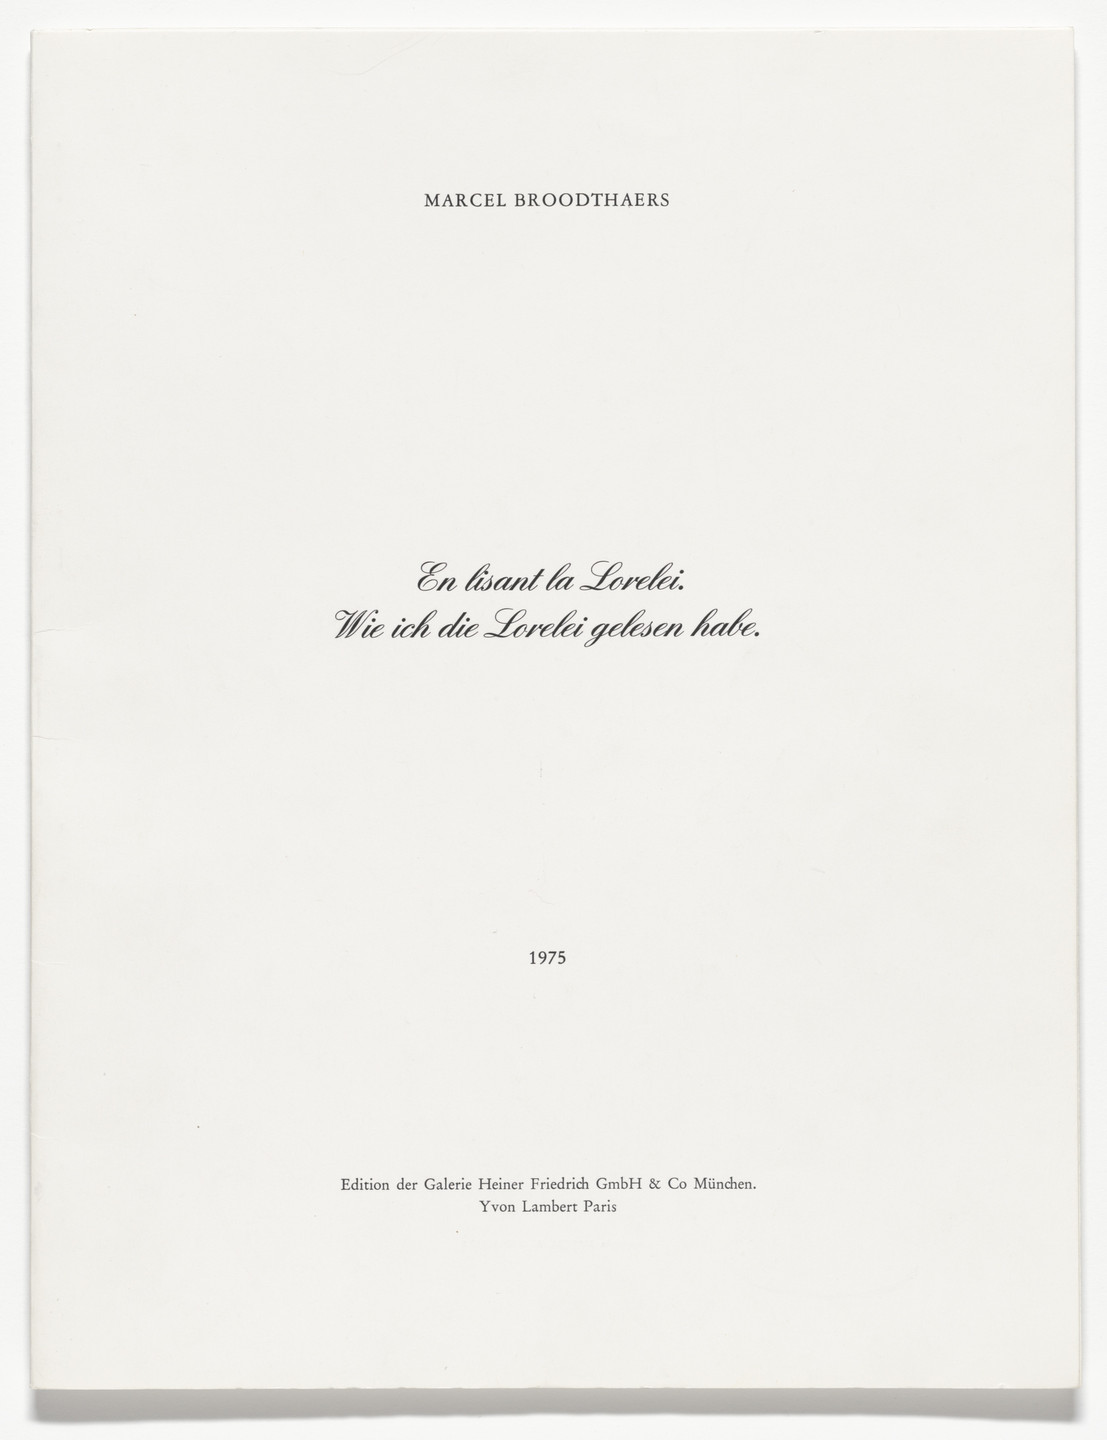 Marcel Broodthaers. En lisant la Lorelei. / Wie ich die Lorelei gelesen habe. (While reading the Lorelei.). 1975